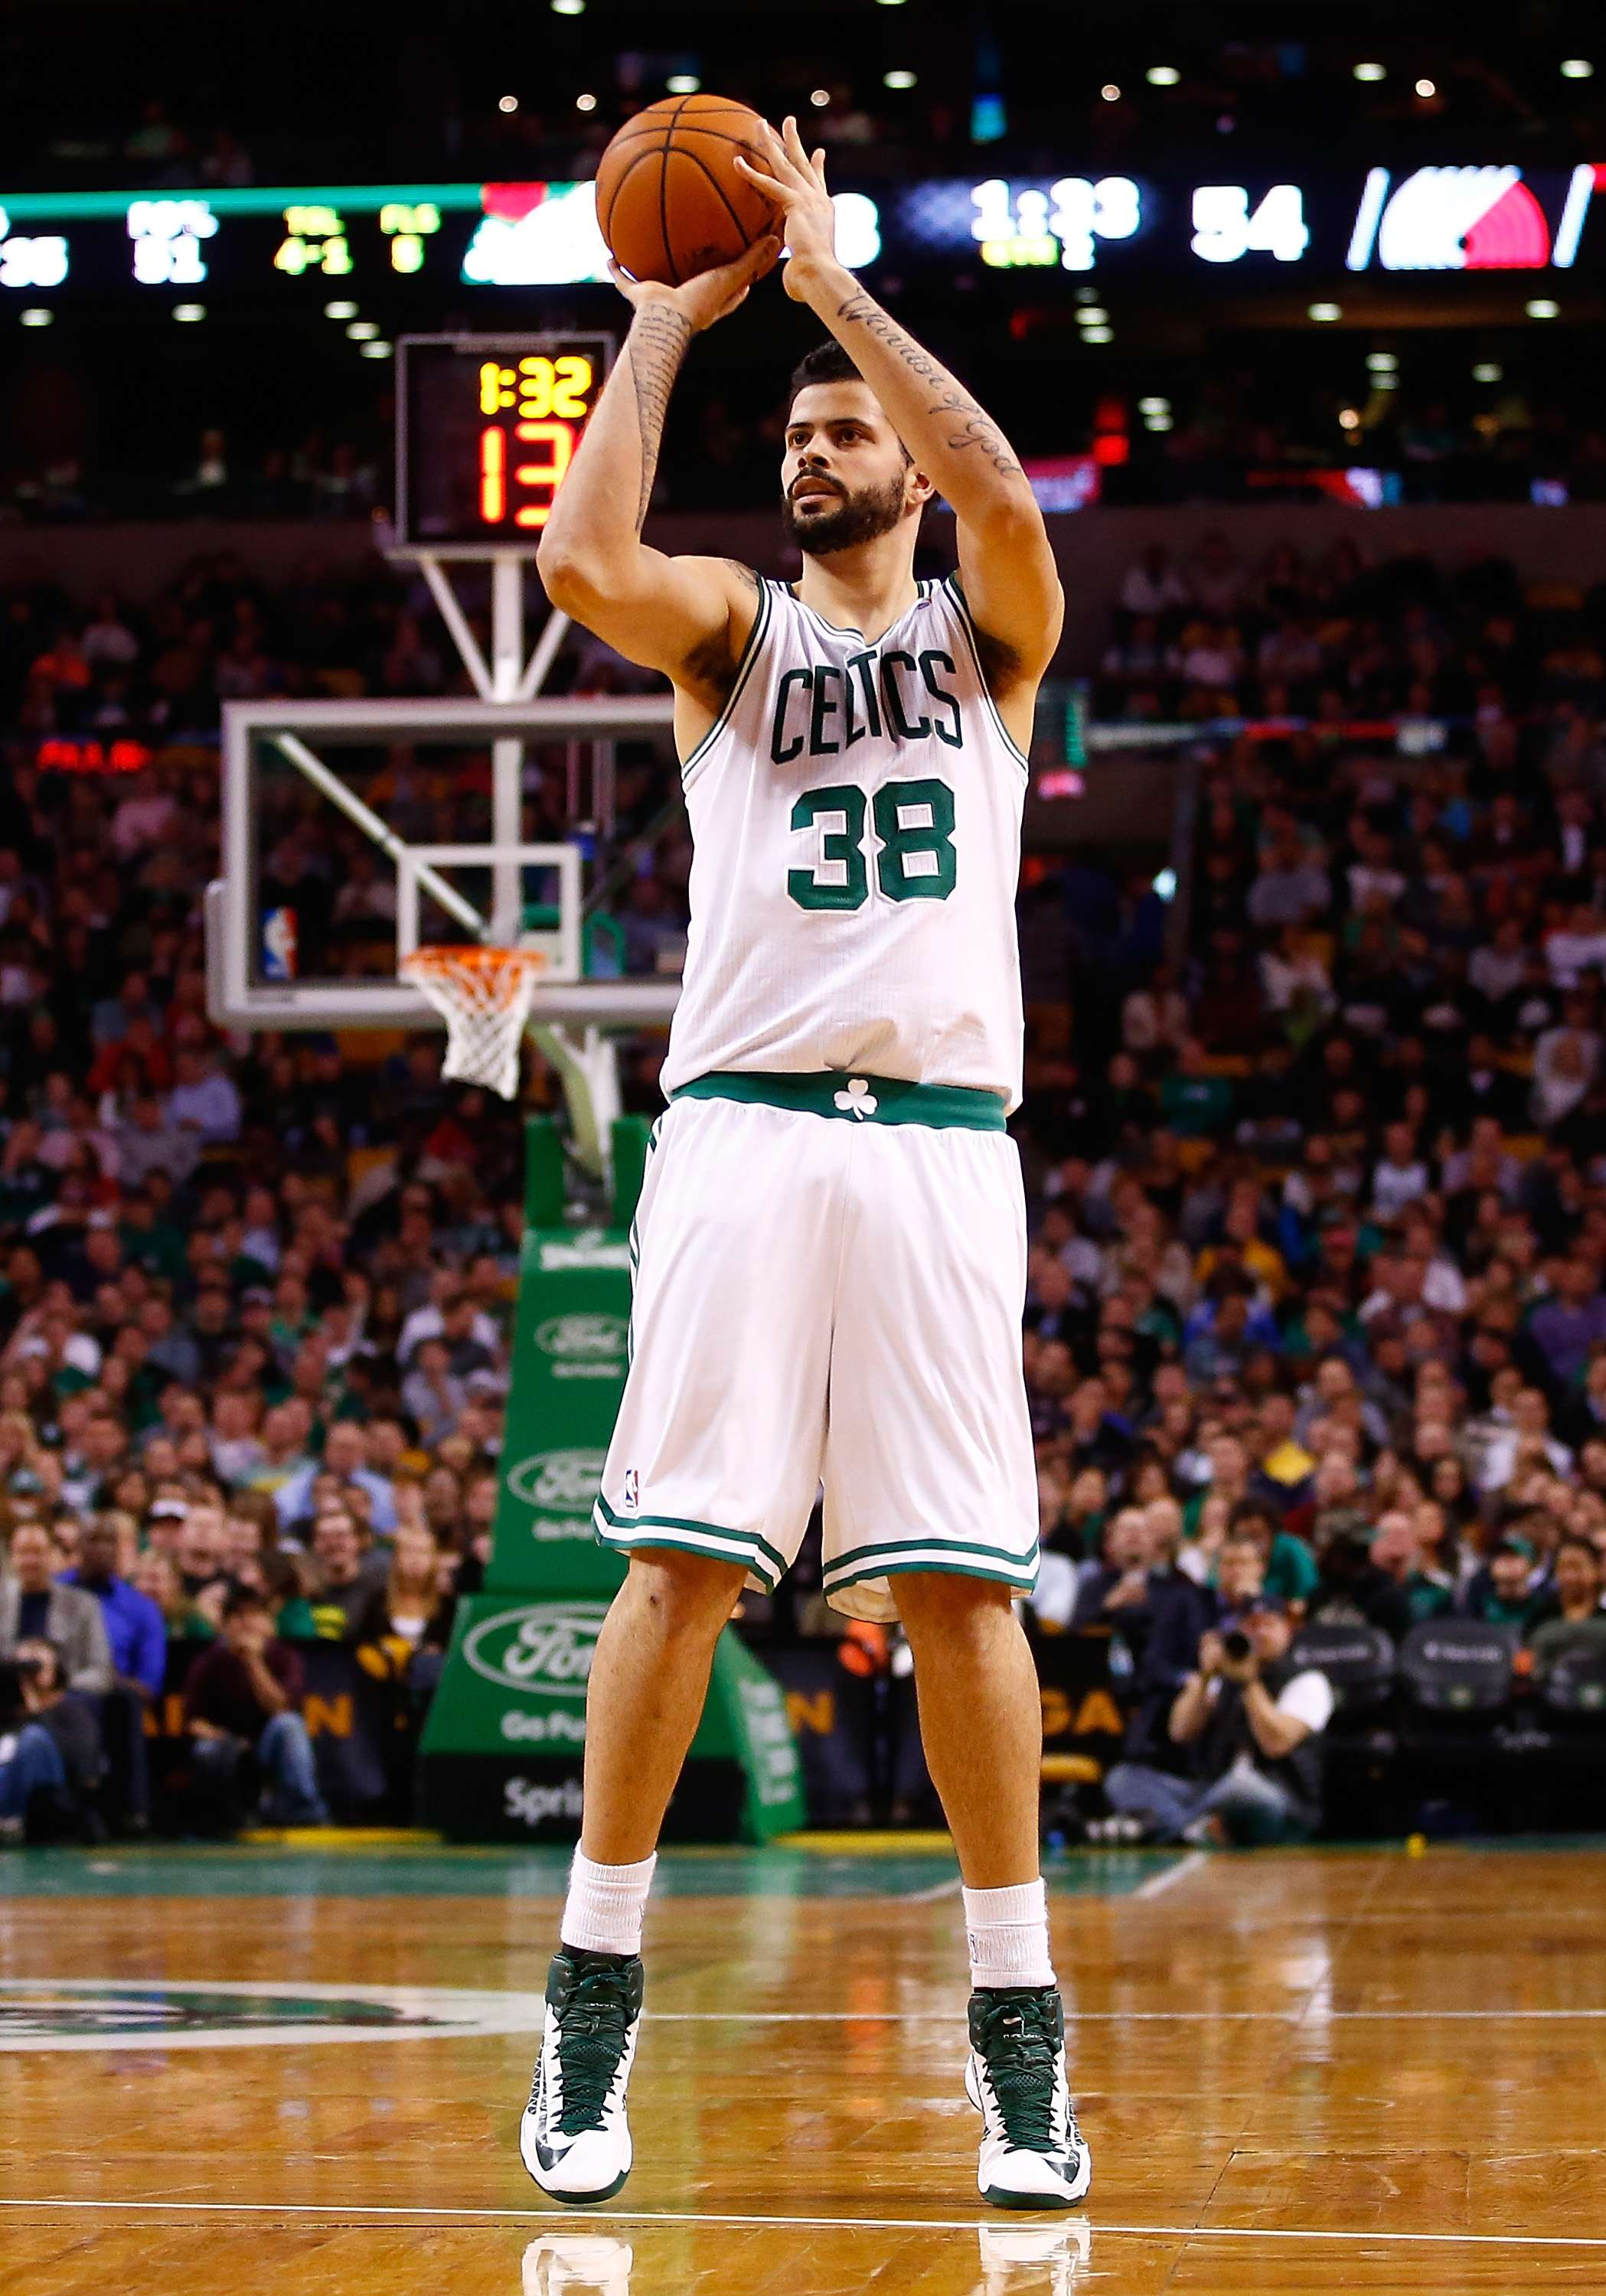 Vitor Faverani atua pelo Boston Celtics Foto: Jared Wickerham/Getty Images